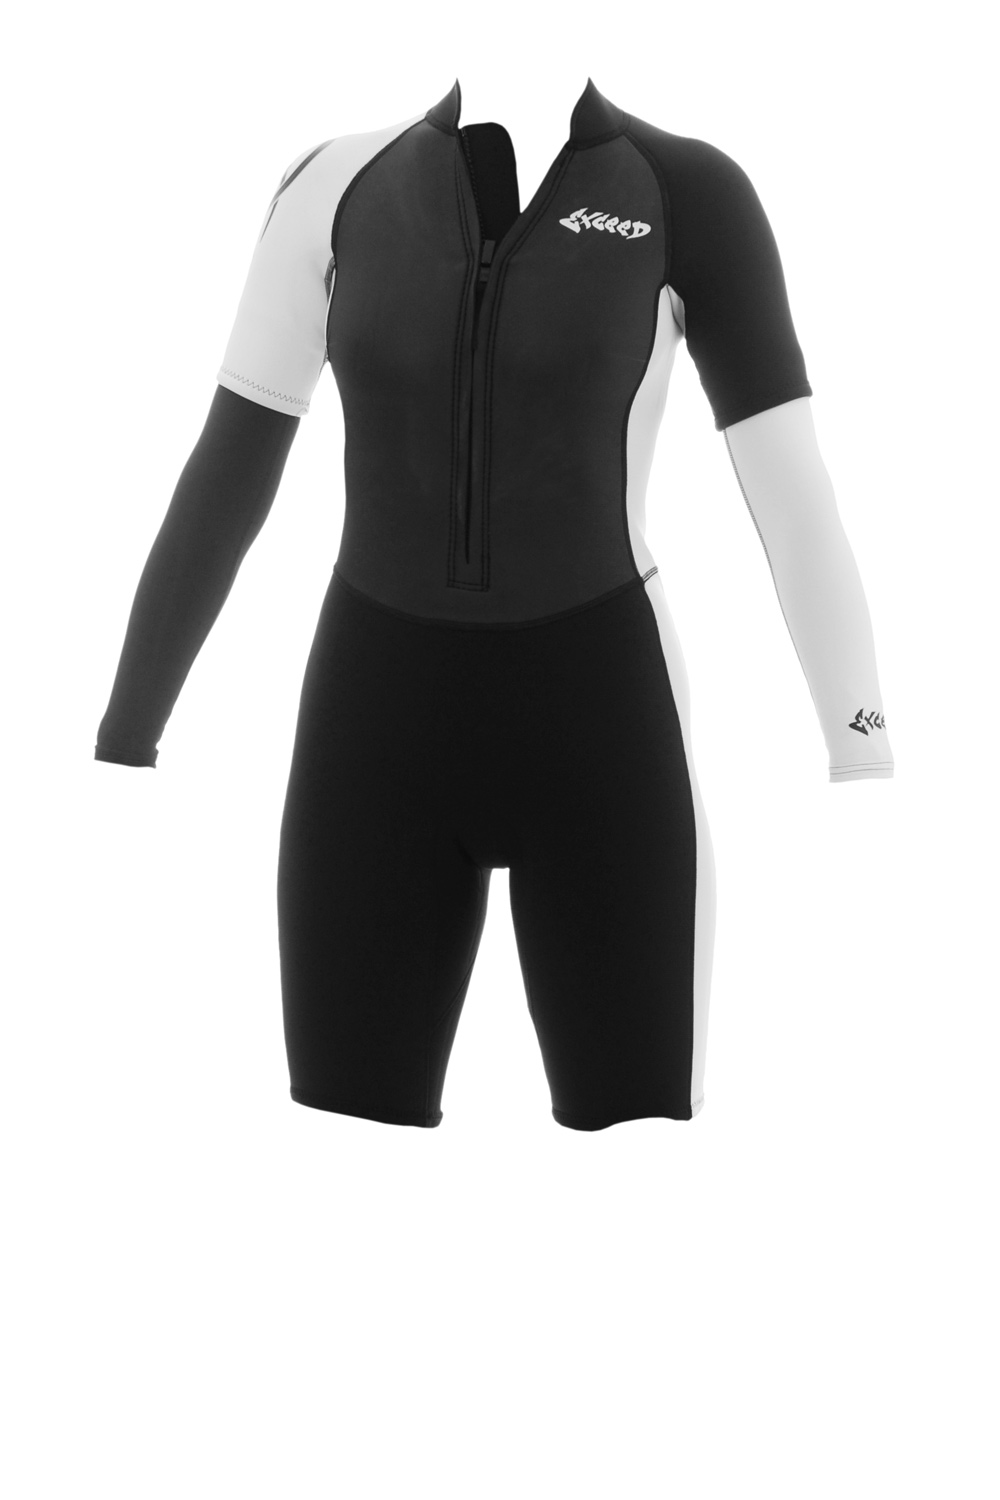 Exceed Euphoria Womens 3/2mm Shorty Wetsuit